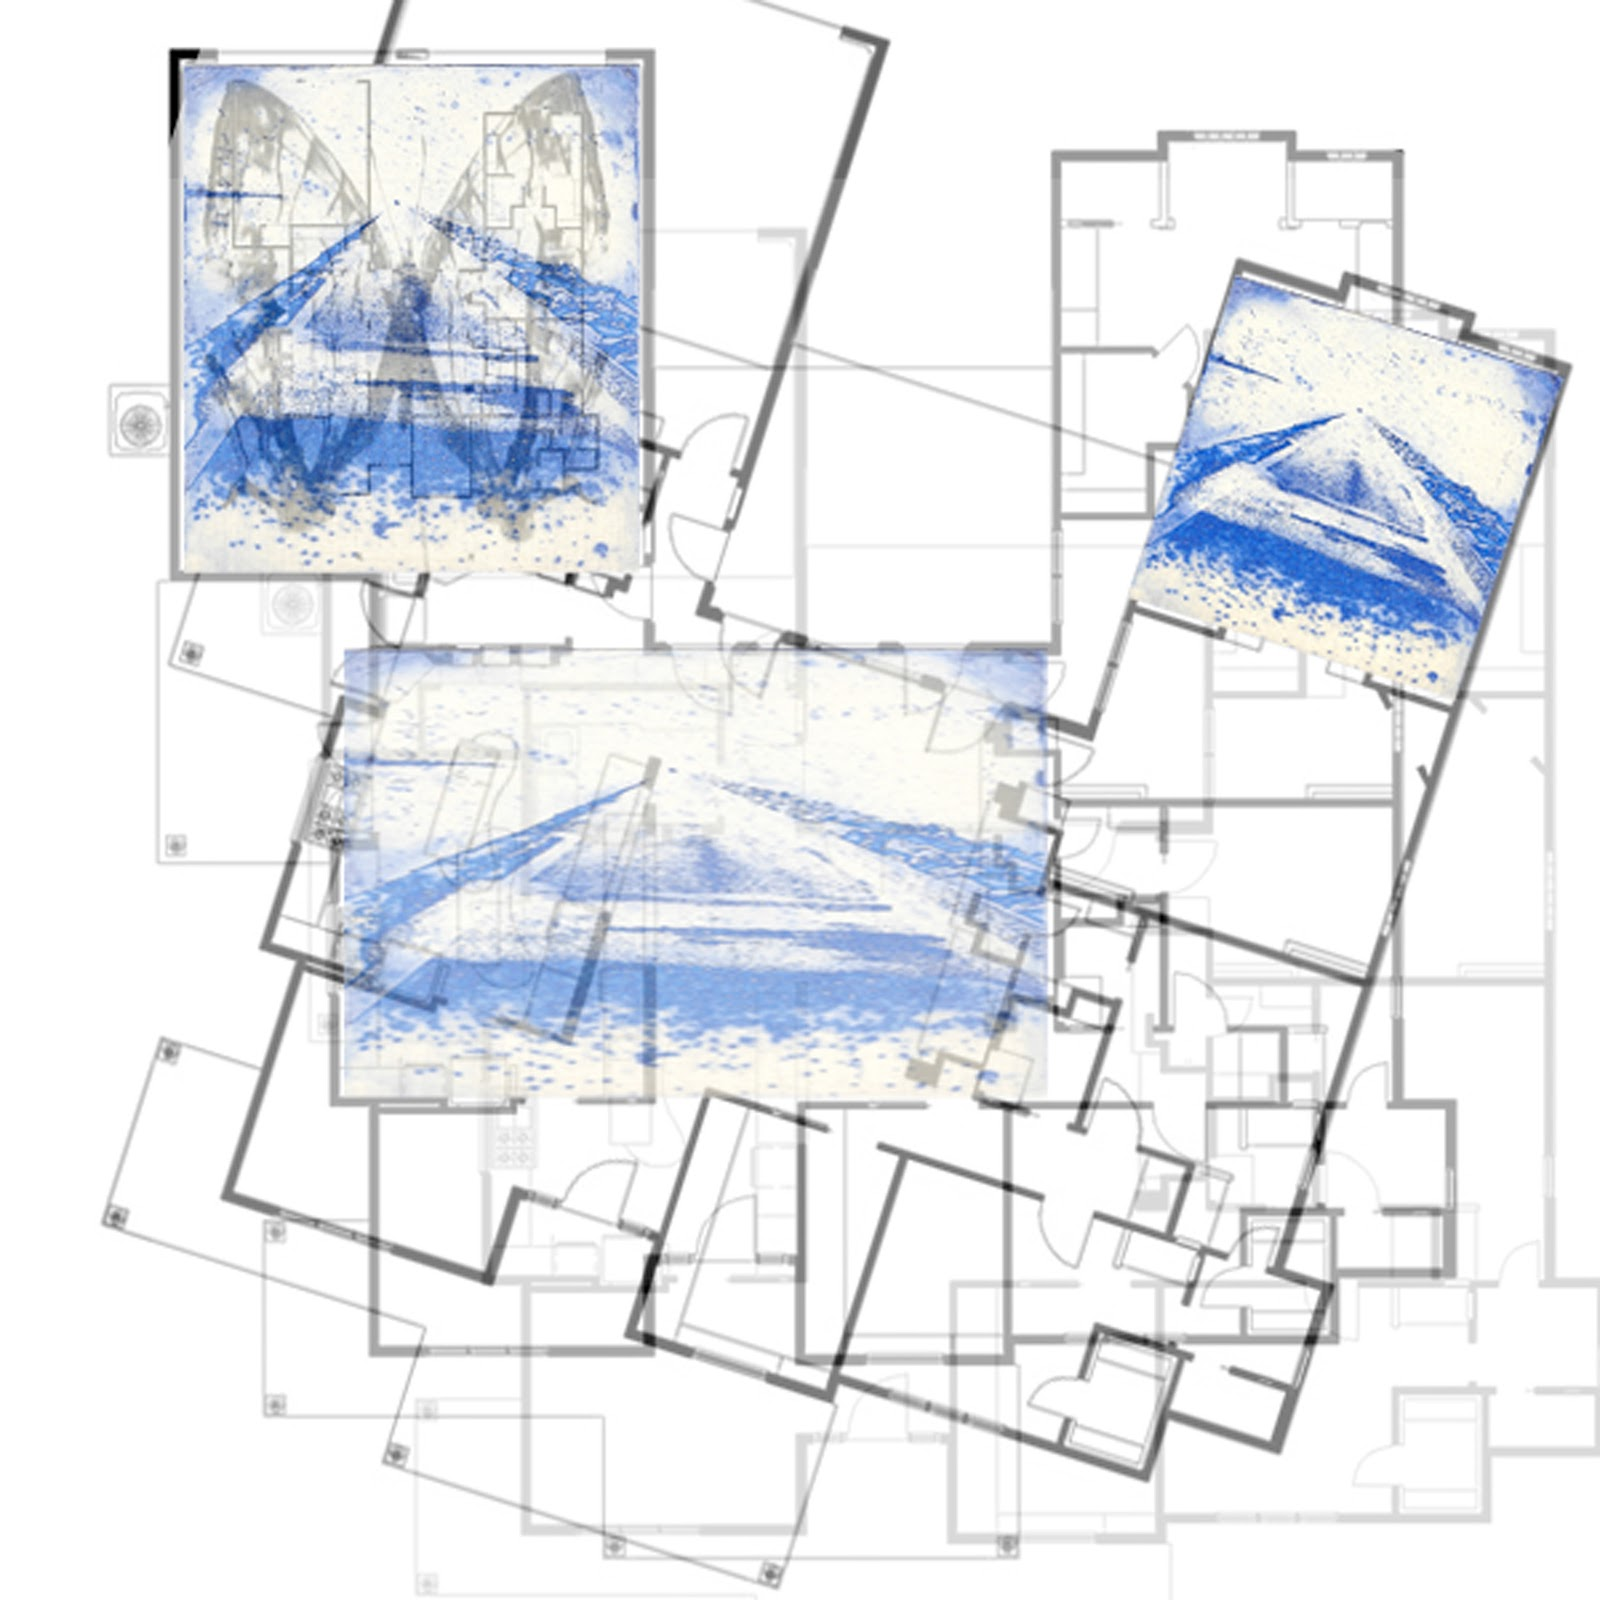 Art design interdisciplinary joanna geldard blueprints blueprints establishes the staring into the everyday it focuses on the point of the body in space and it attempts to still and quiet the body whilst malvernweather Images